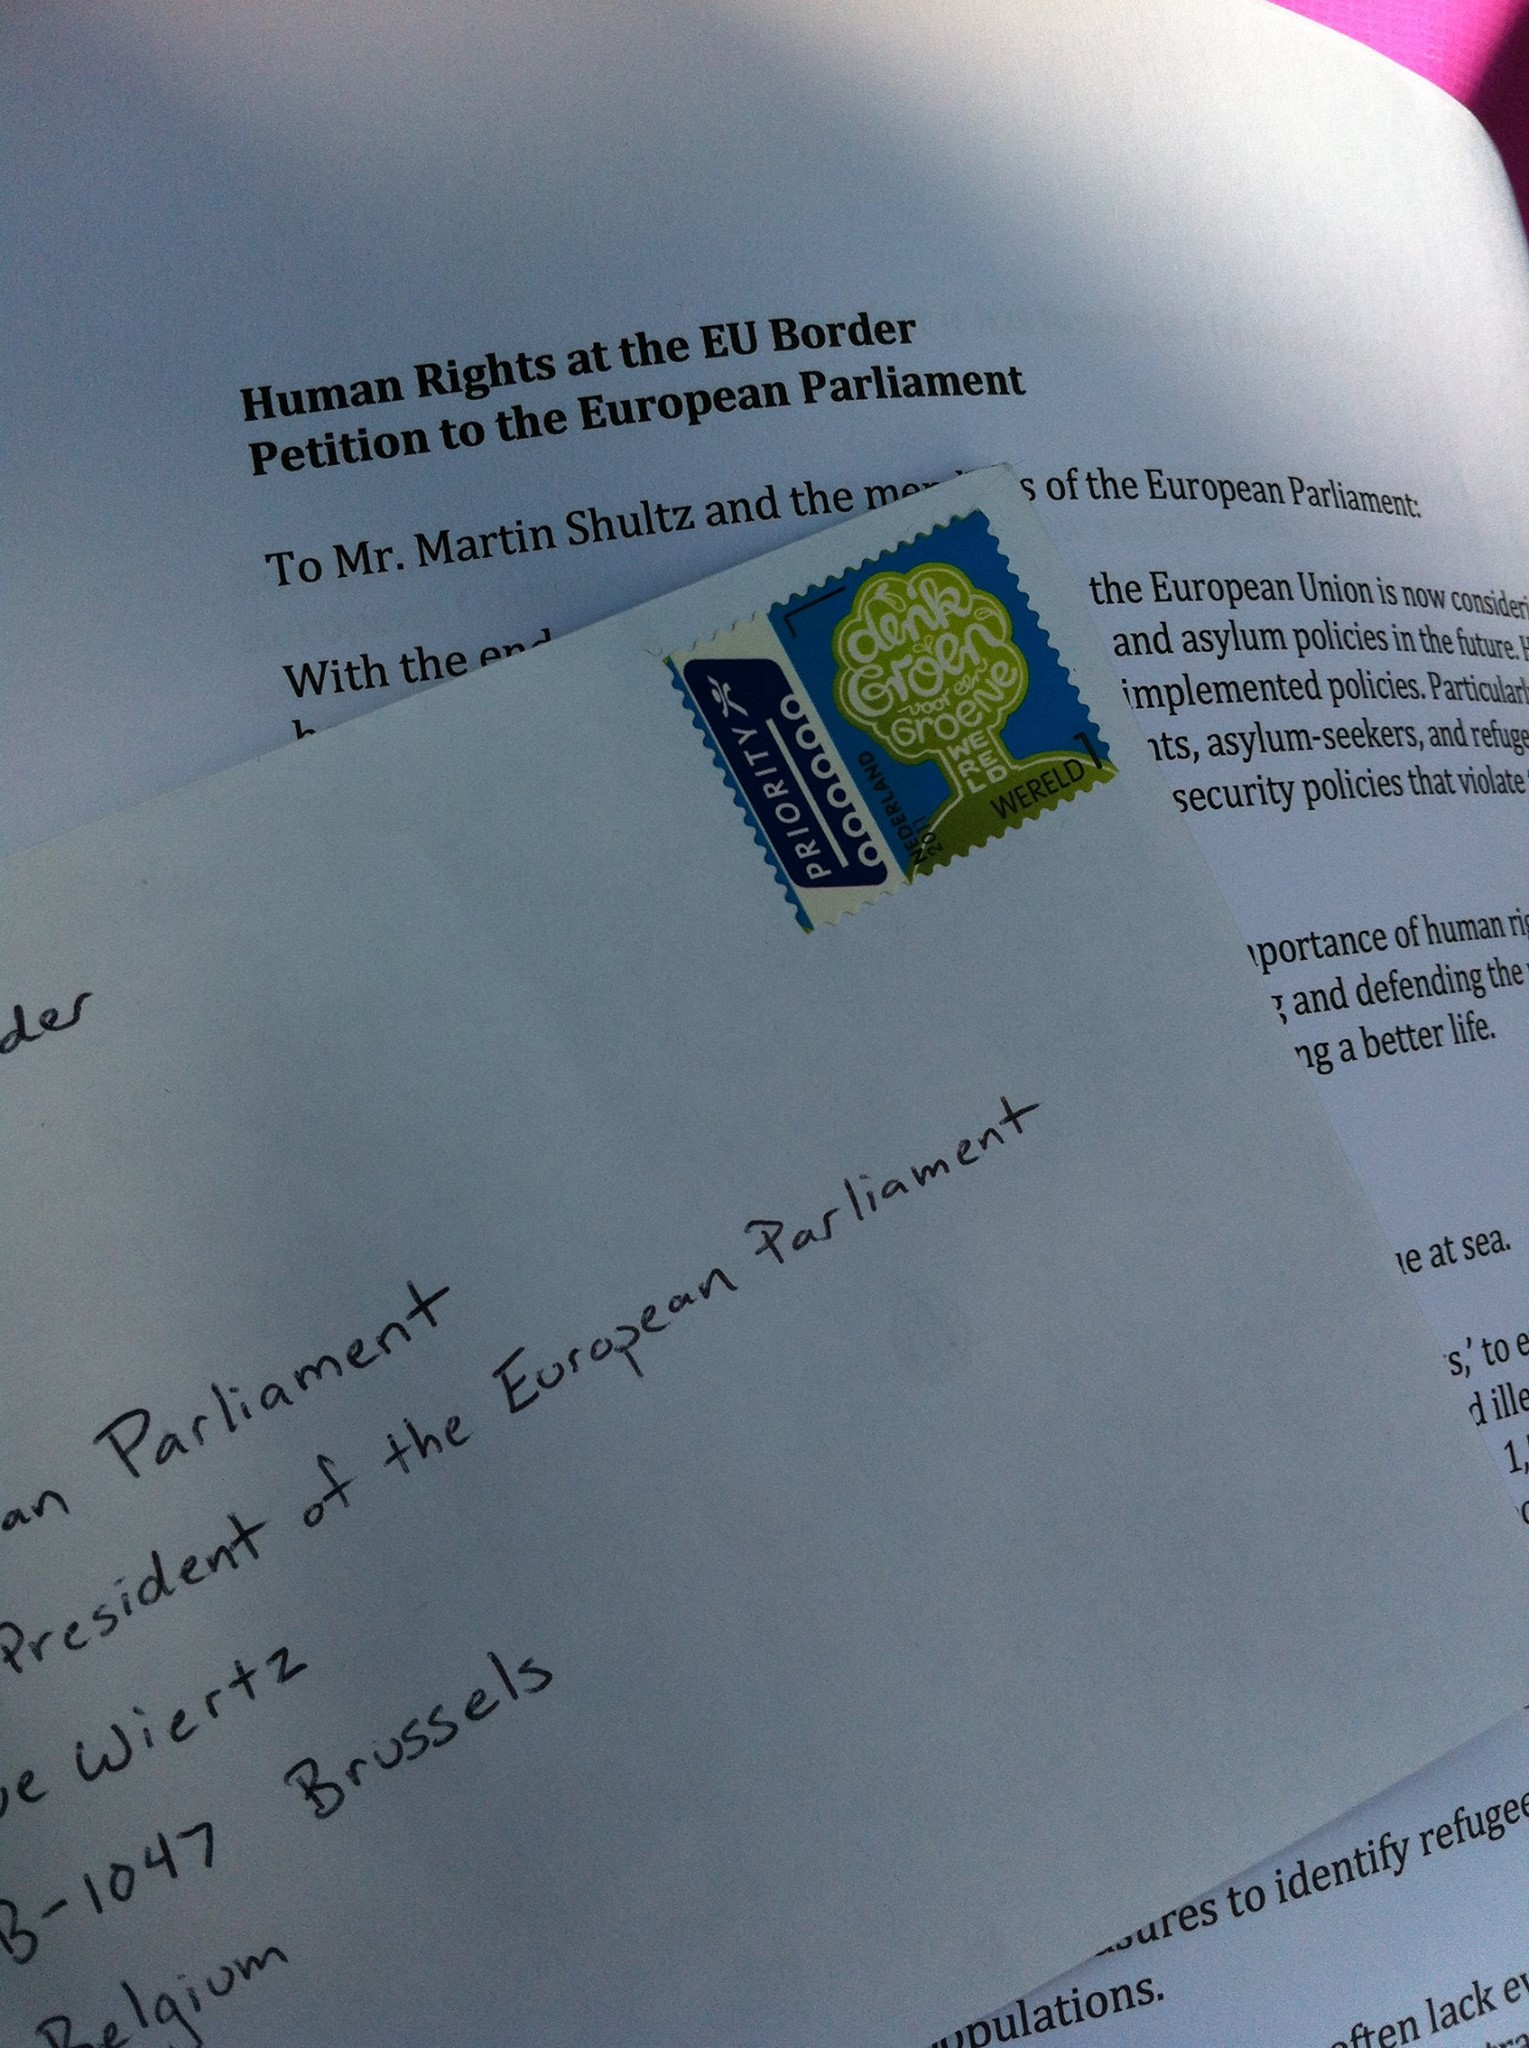 The petition to the European Parliament, ready to be mailed to Brussels.